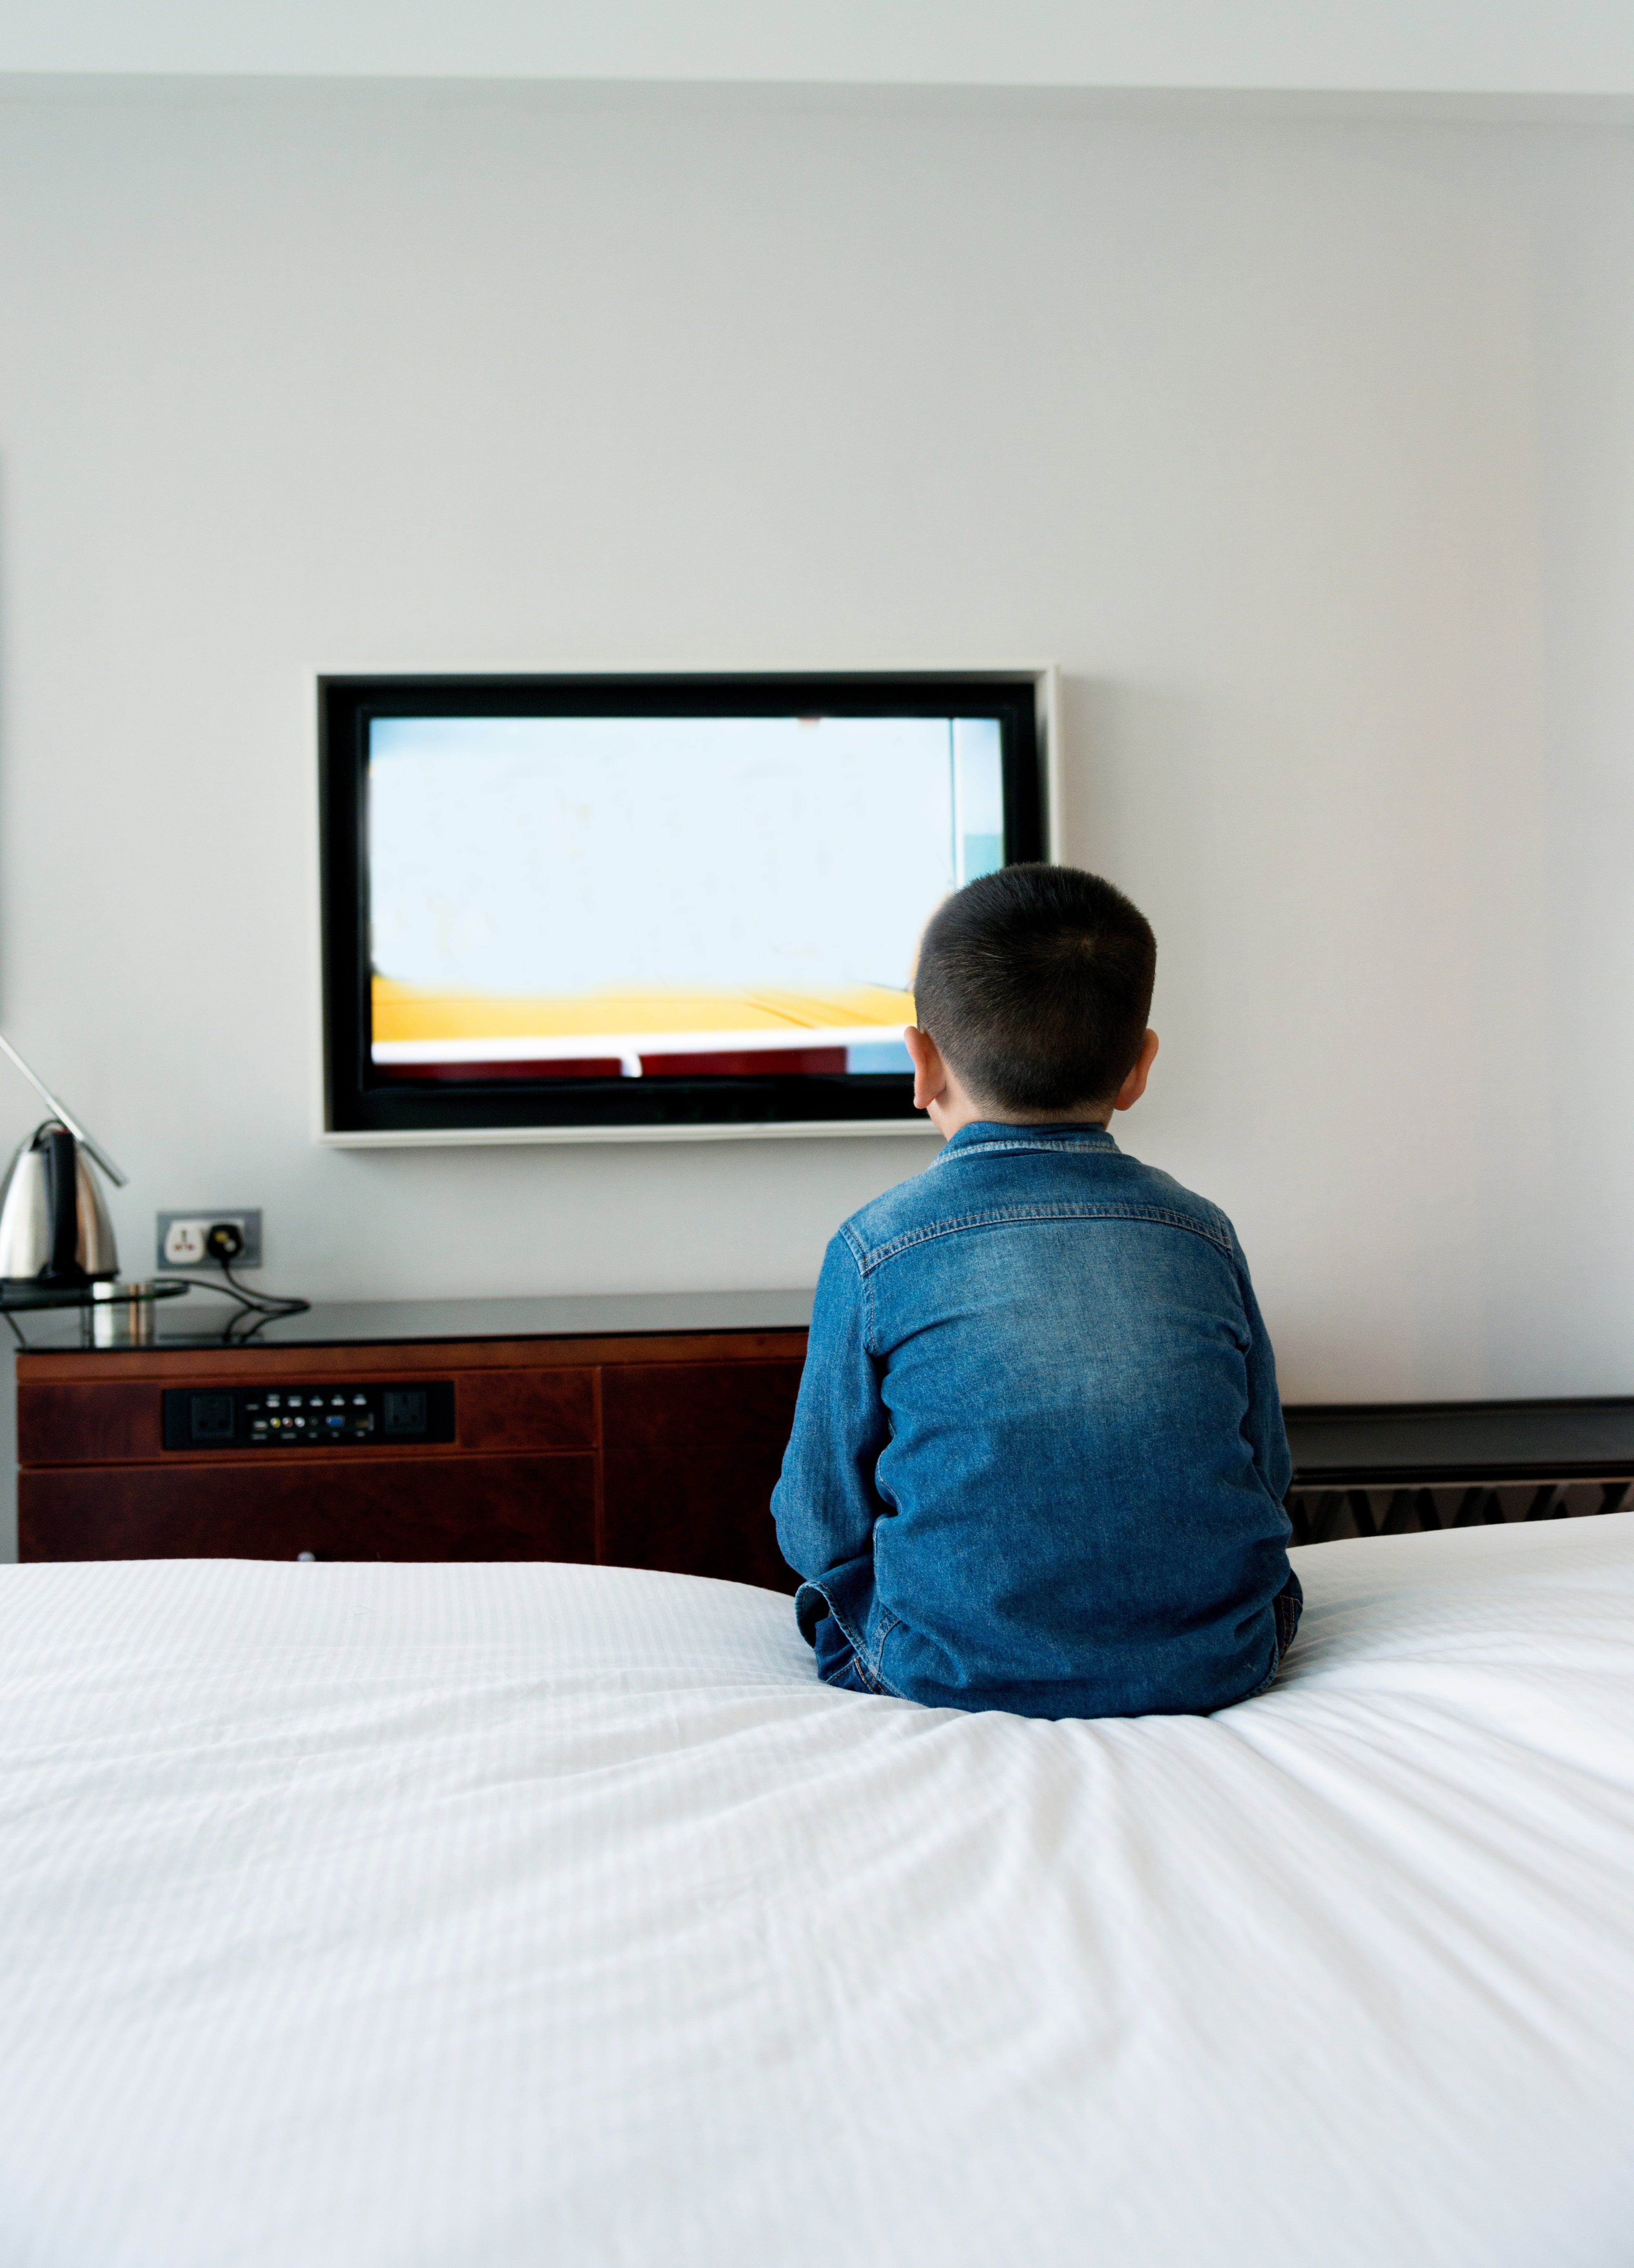 New Study Adds Key Piece To Autism >> An Oscar Nominated Film Inspires A New Approach To Autism